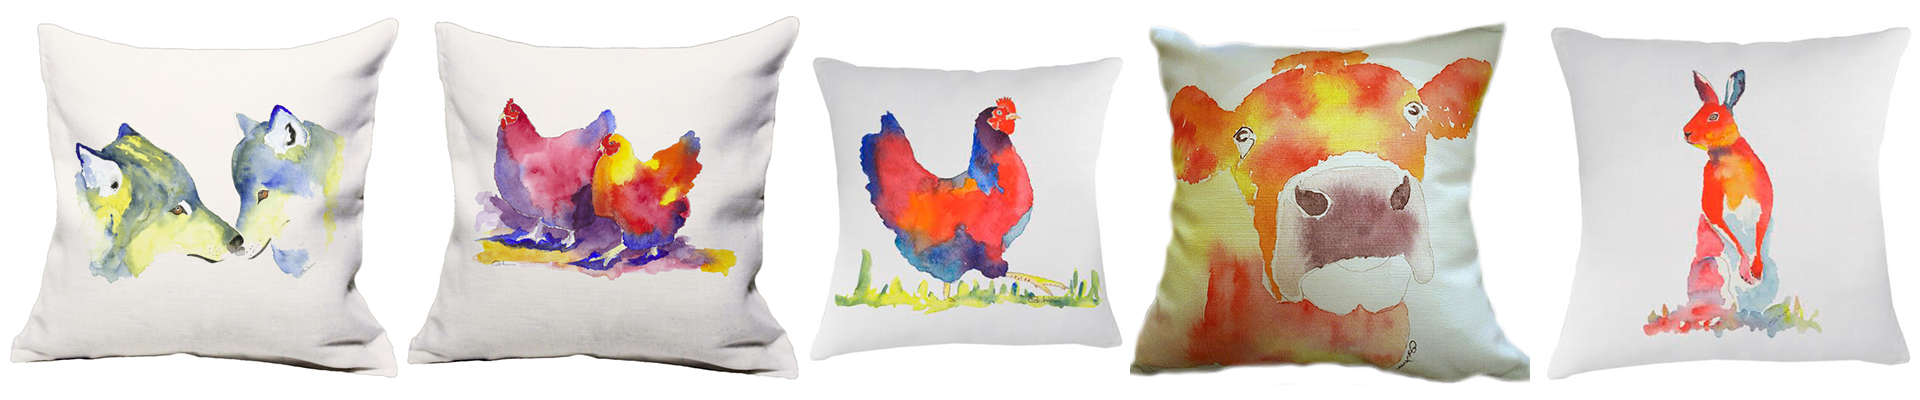 Cushions with Painted Animal Prints